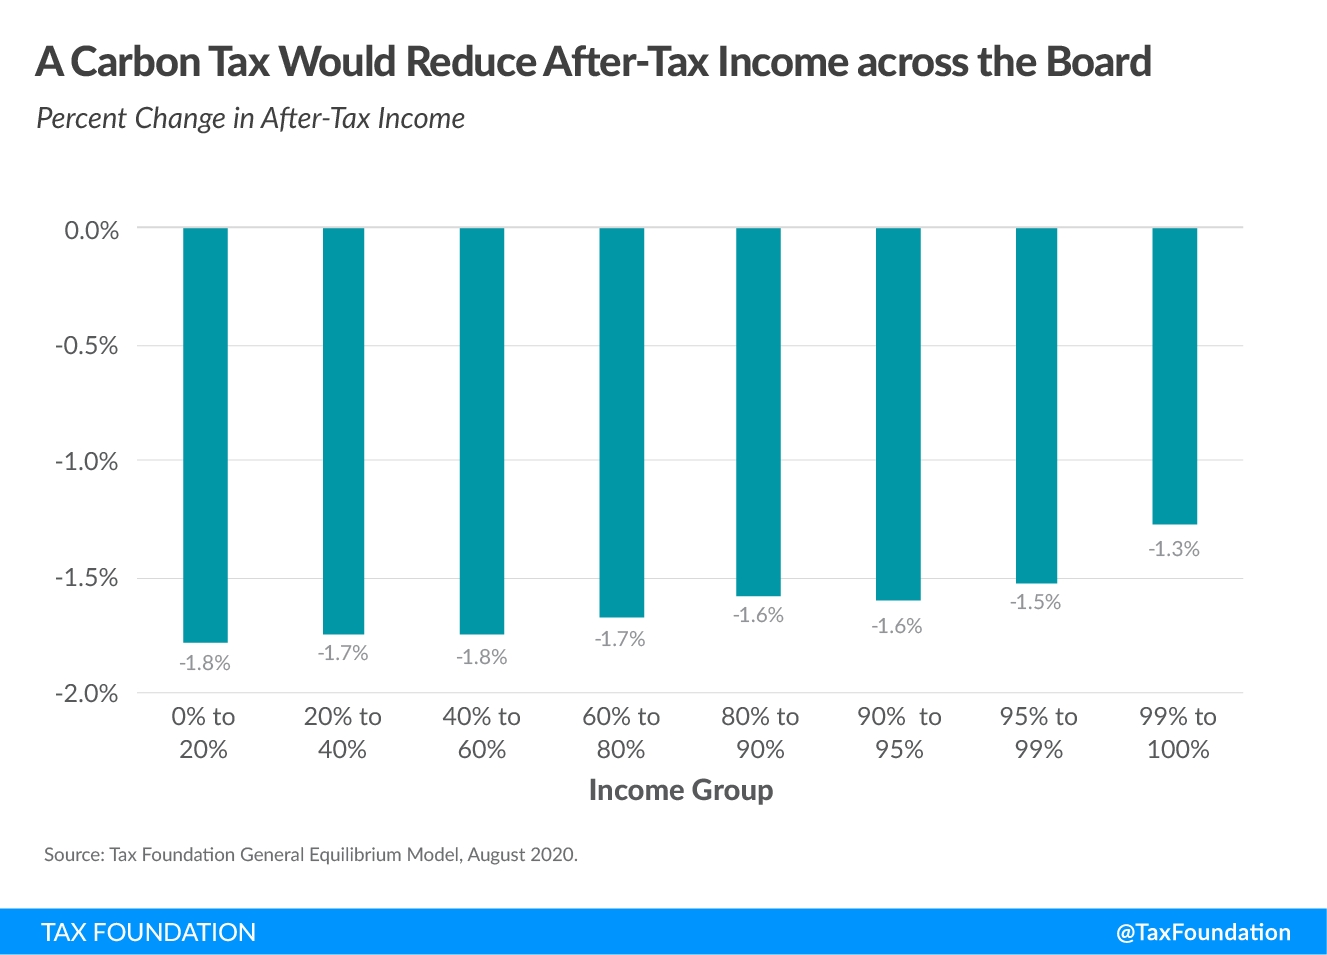 A US carbon tax would reduce after-tax income across the board